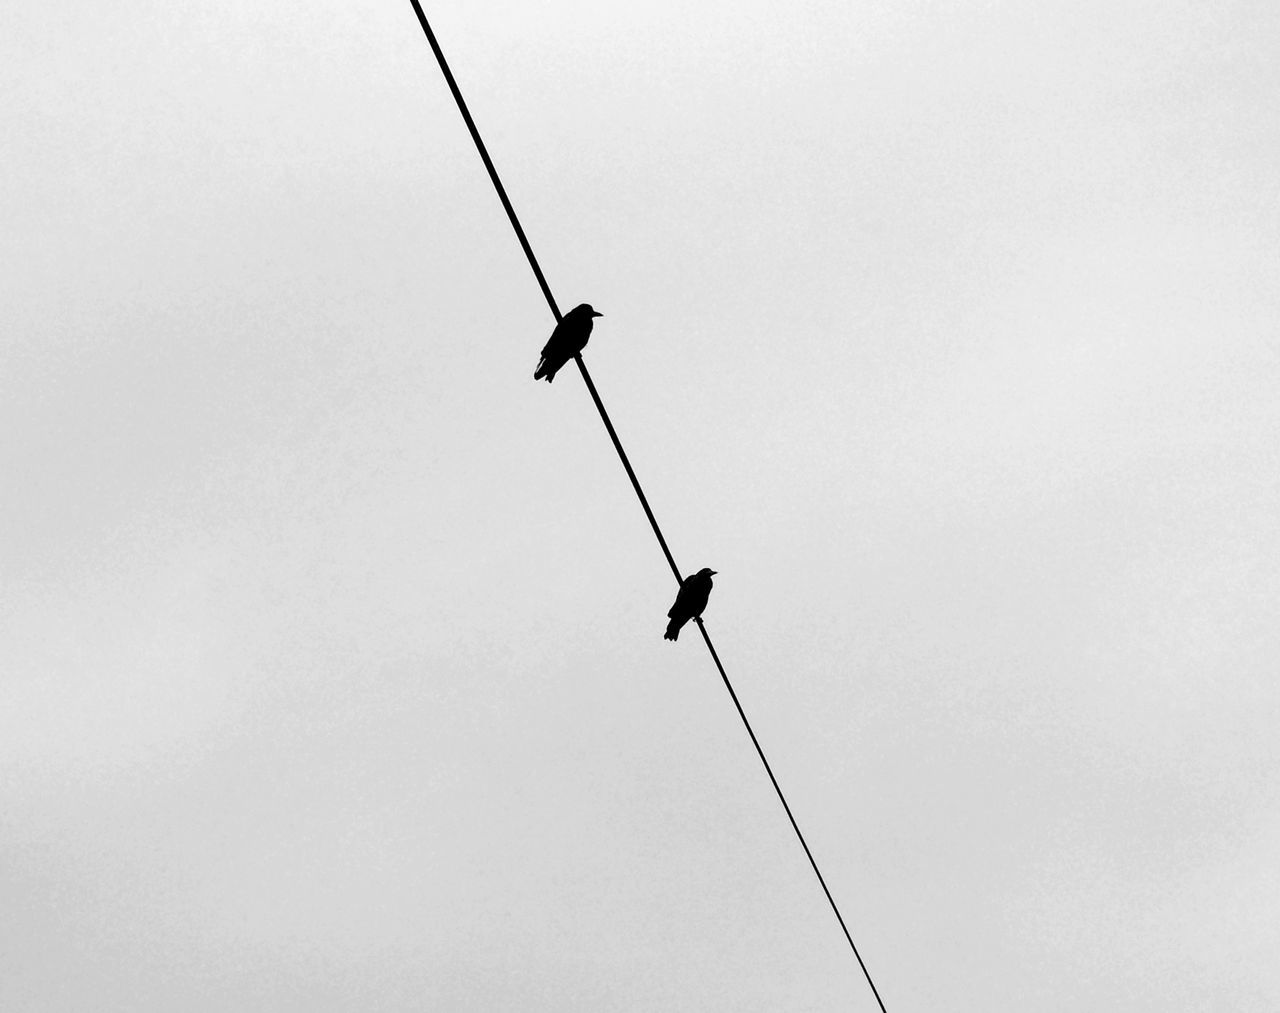 Crows Animal Themes Animals In The Wild Birds Birds In A Line Birds In The City Birds Silhouette Clear Sky Crow Crows Low Angle View Nature No People Outdoors Perching Raven Ravens Silhouette